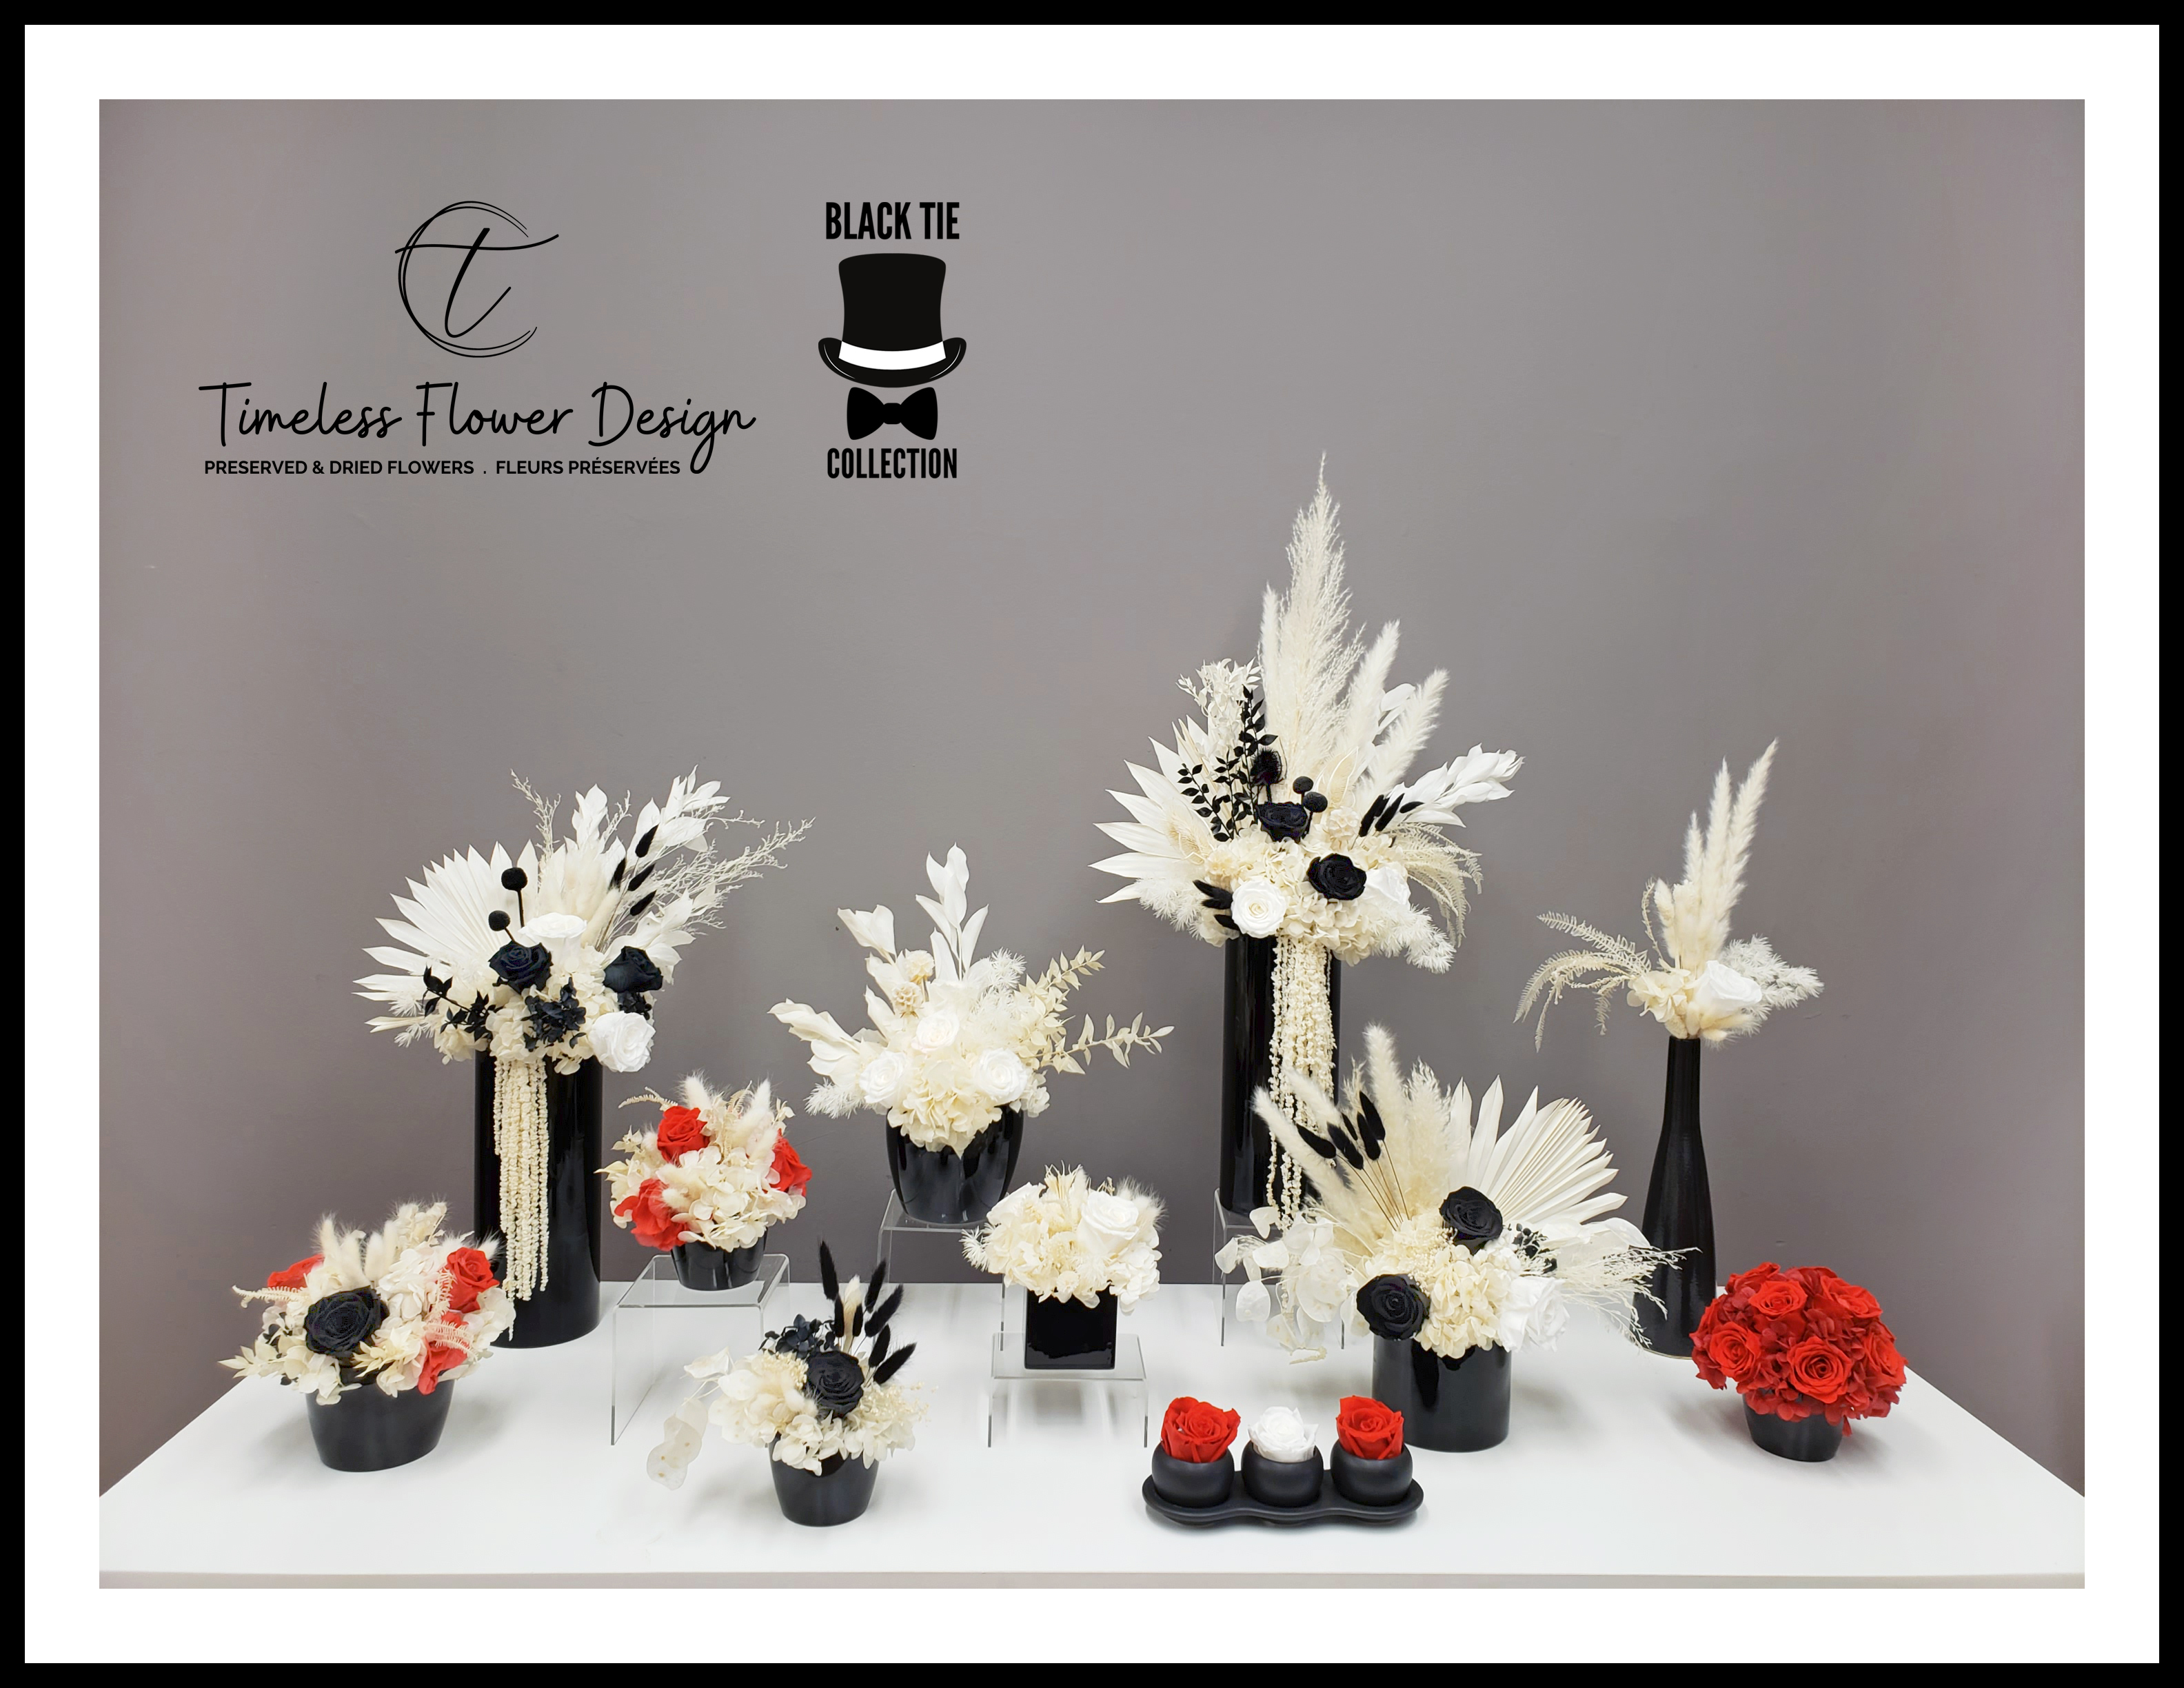 Timeless Flower Design launches a new designer flower collection - the Black Tie Collection